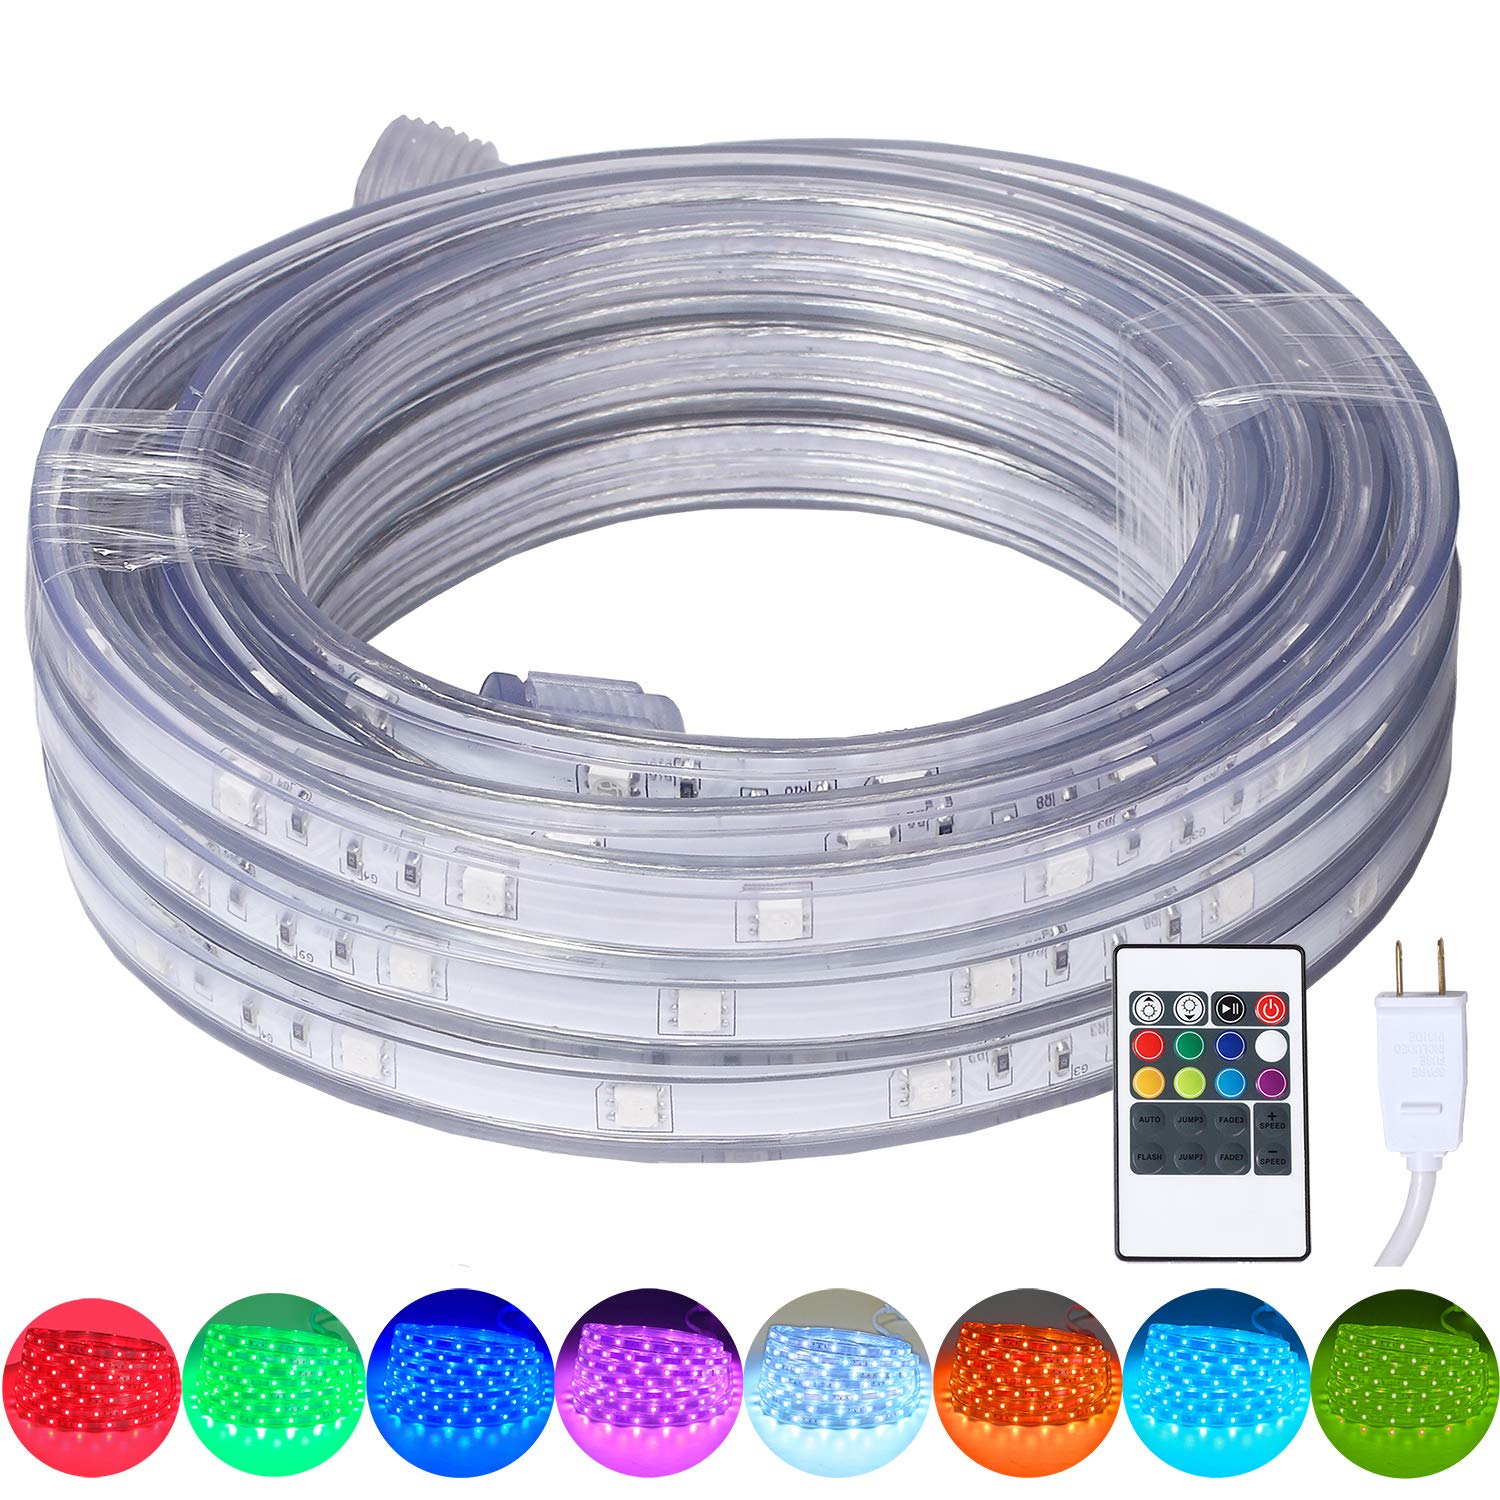 16.4 Feet Flat Flexible LED Rope Lights, Color Changing RGB Strip Light with Remote Control, 8 Colors Multiple Modes, Plug in Novelty Lighting, Connectable and Waterproof for Home Kitchen Outdoor Use by Areful